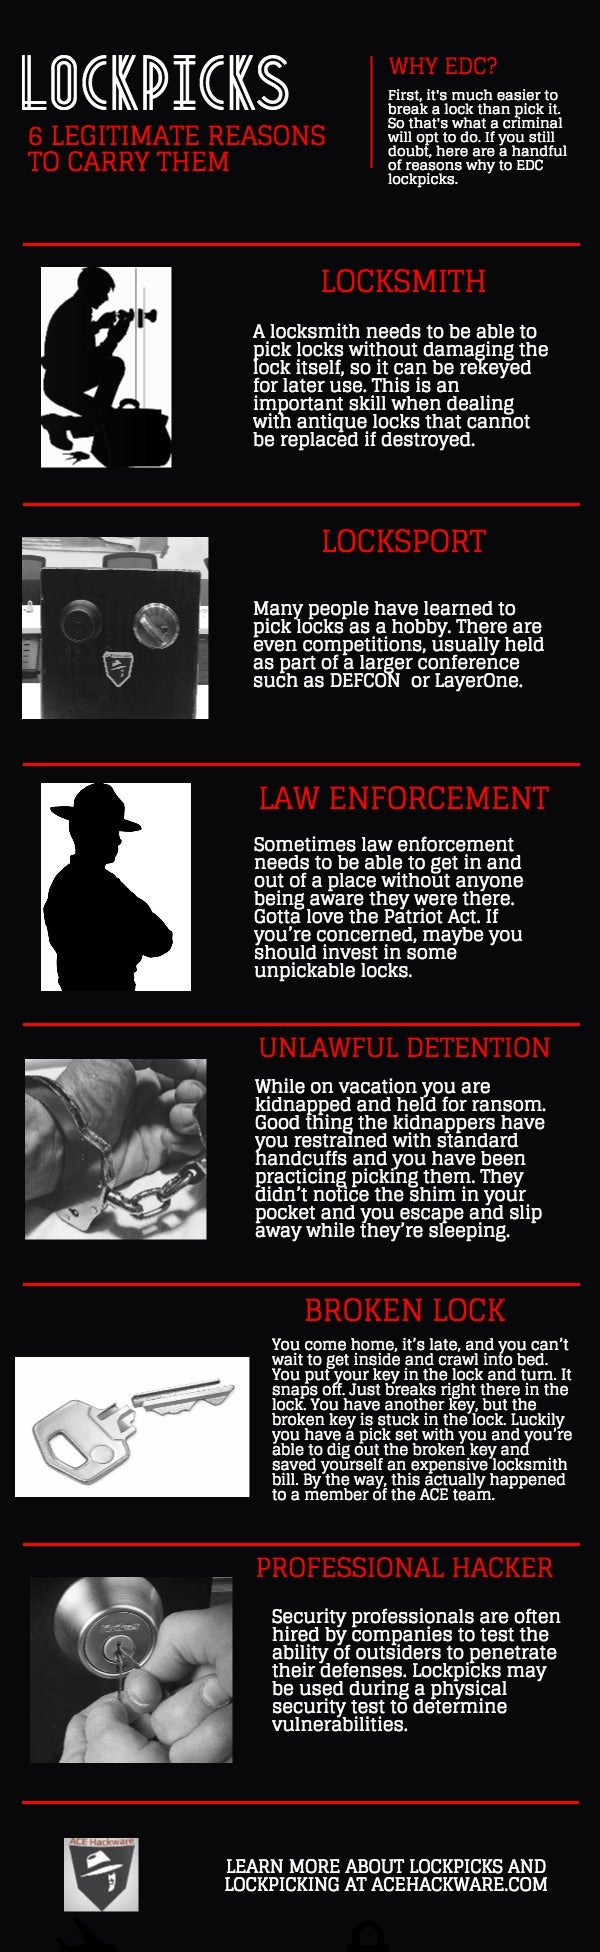 infographic 6 legitimate reasons to carry lockpicks